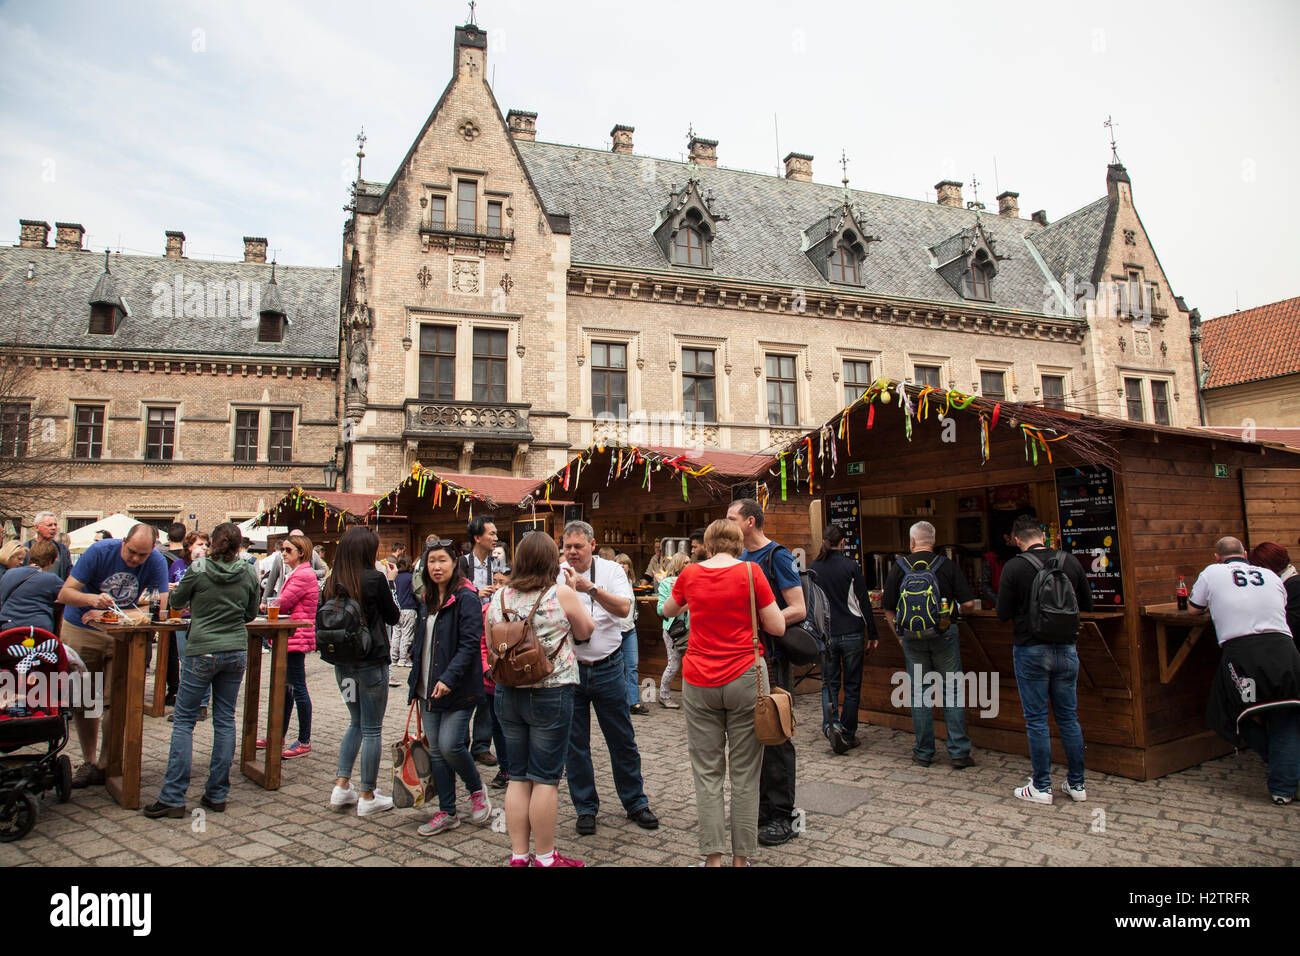 New Provost lodging and stalls at Prague Castle Stock Photo